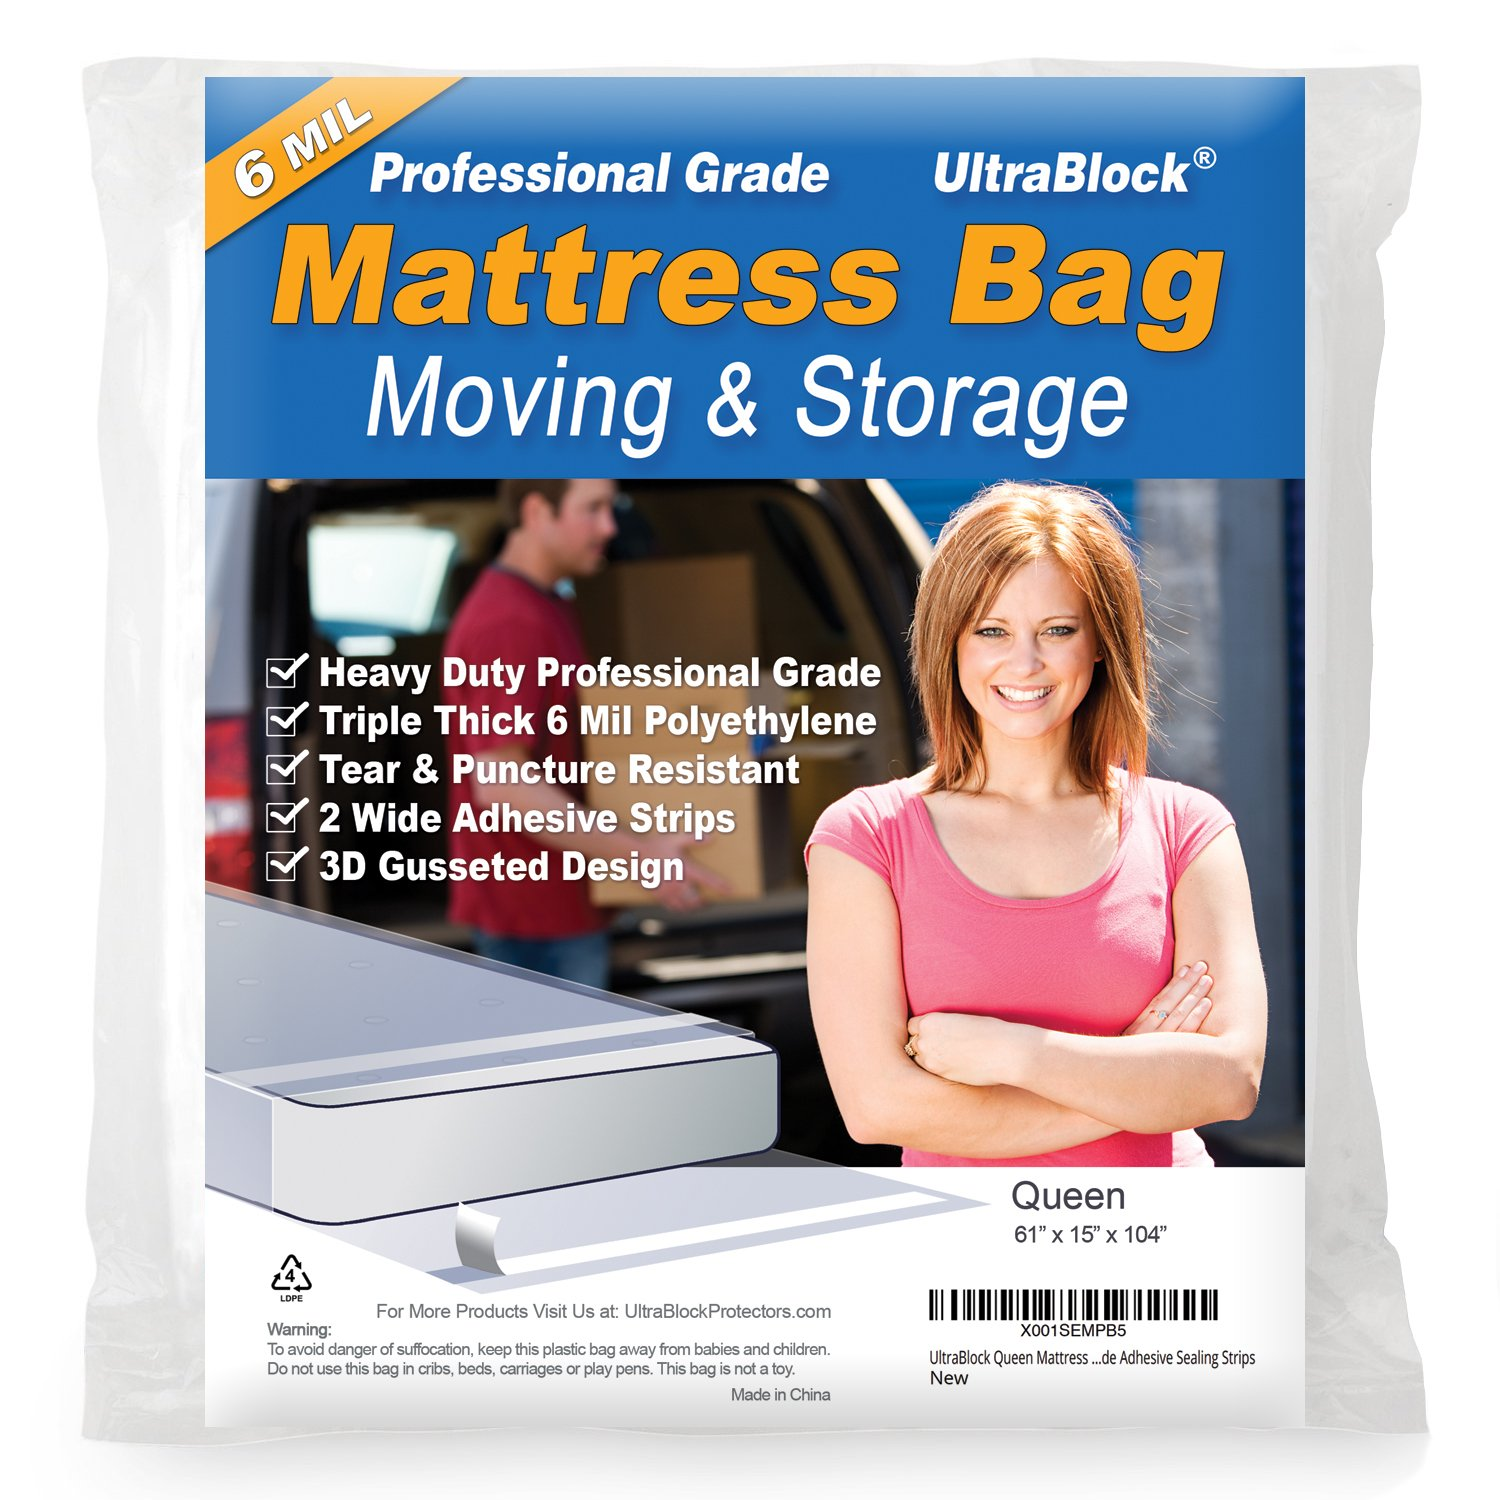 UltraBlock Mattress Bag for Moving & Storage - Twin/Twin XL Size Heavy Duty Triple Thick 6 mil Tear & Puncture Resistant Bag with Two Extra Wide Adhesive Strips